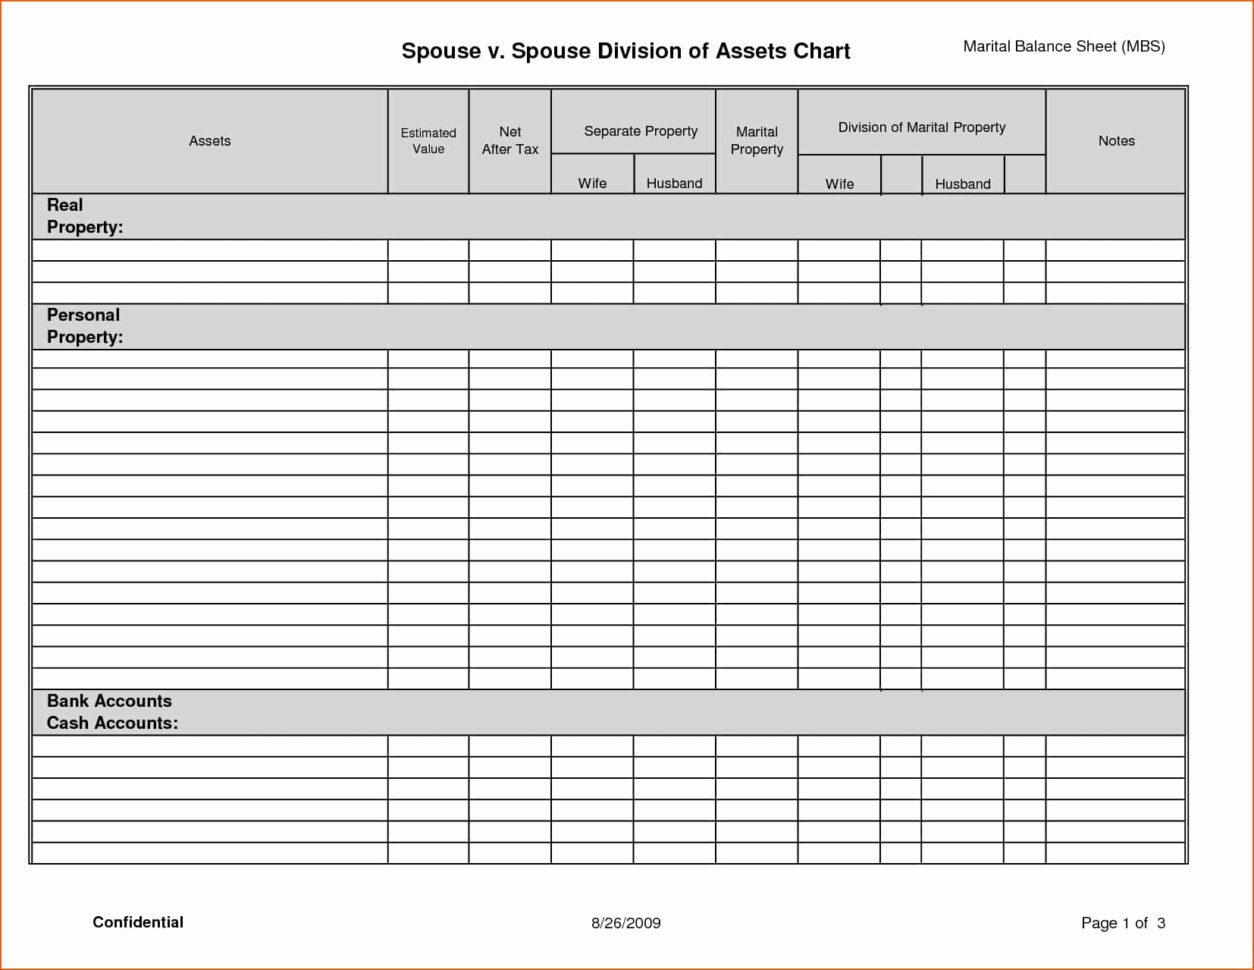 Lottery Inventory Spreadsheet Throughout Vending Machine Inventory Spreadsheet Excel  Pywrapper